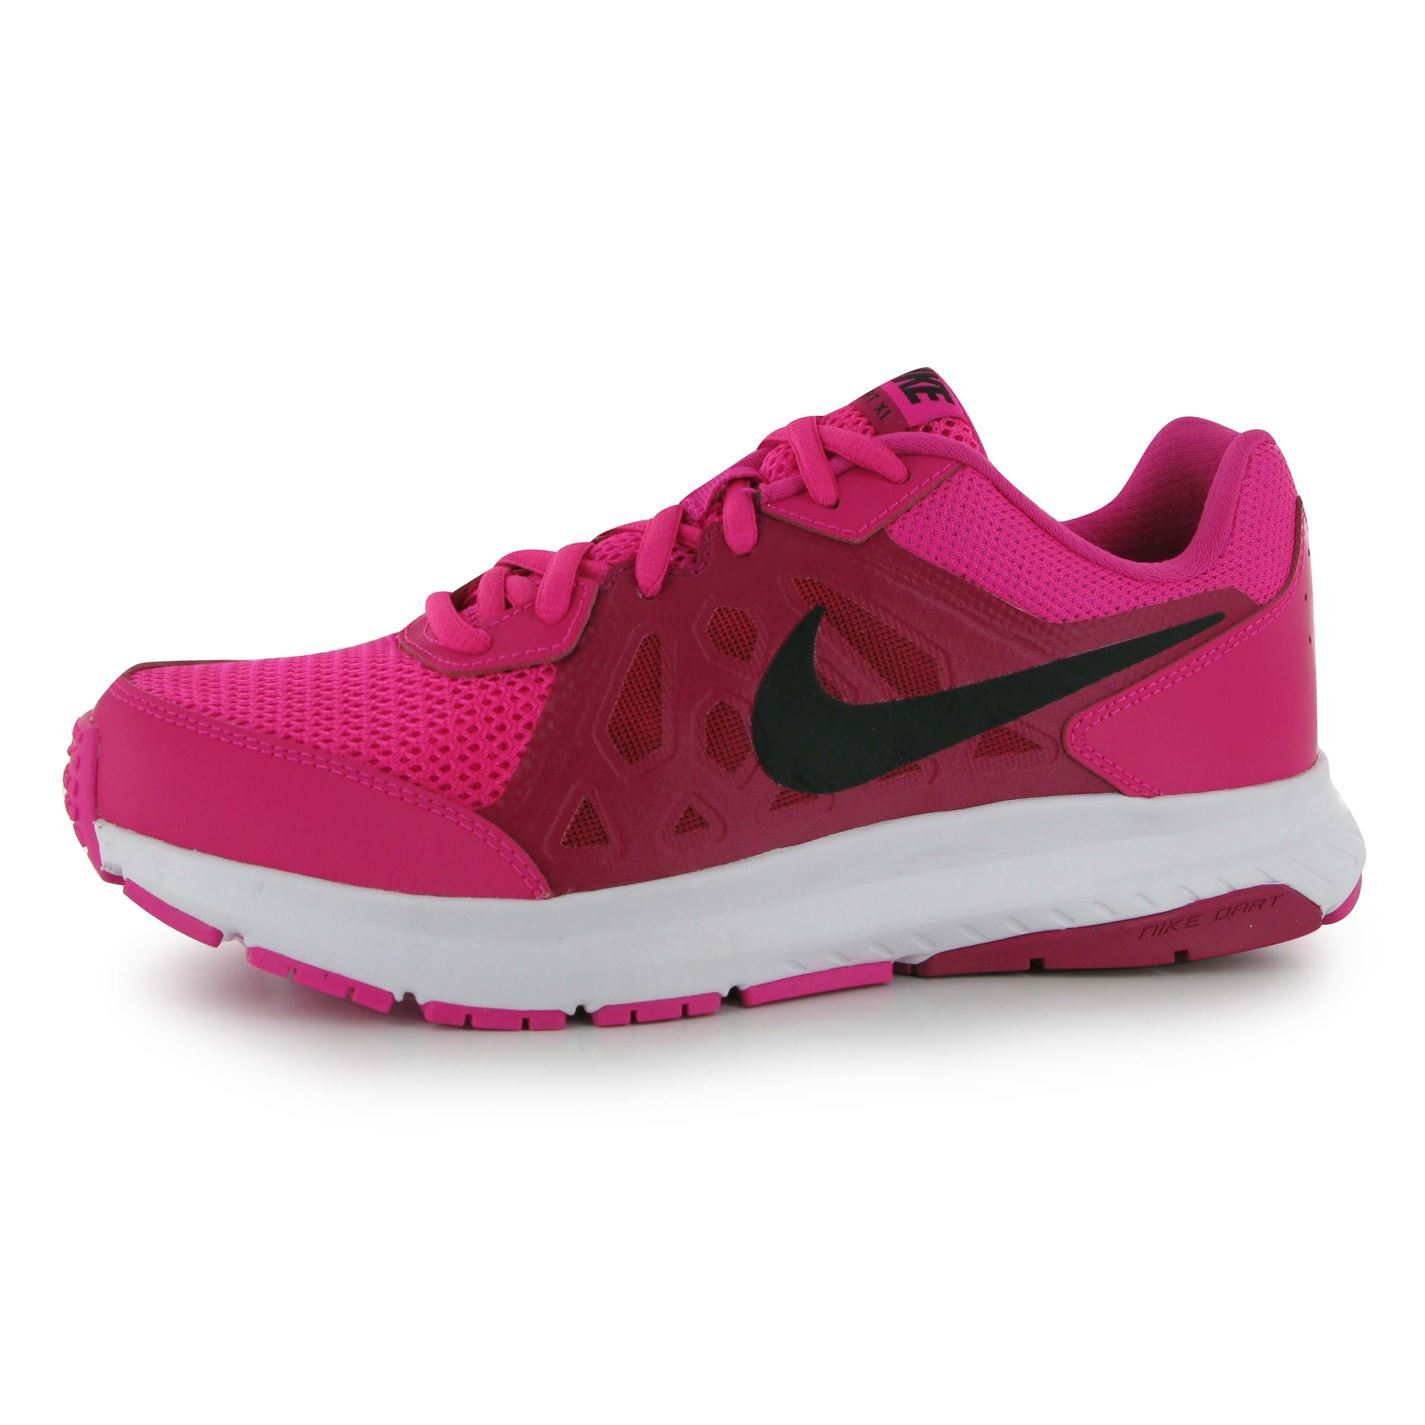 Creative NIKE Women39s D4C2 Stretch No Tie Support TrainerWorkout Sneakers